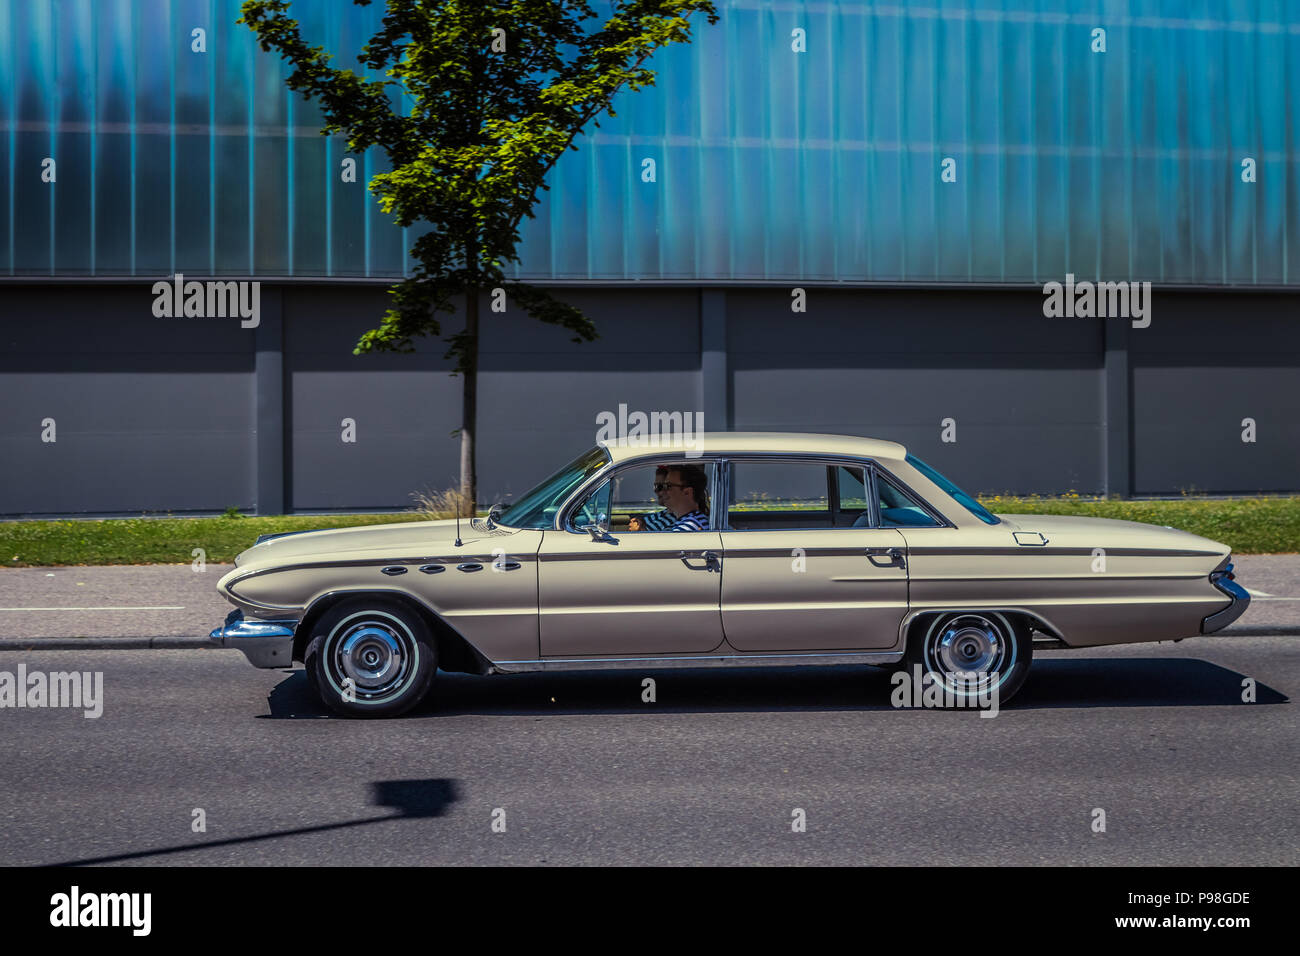 hight resolution of heidenheim germany july 8 2018 1961 buick electra at the 2 oldtimer day in heidenheim an der brenz germany